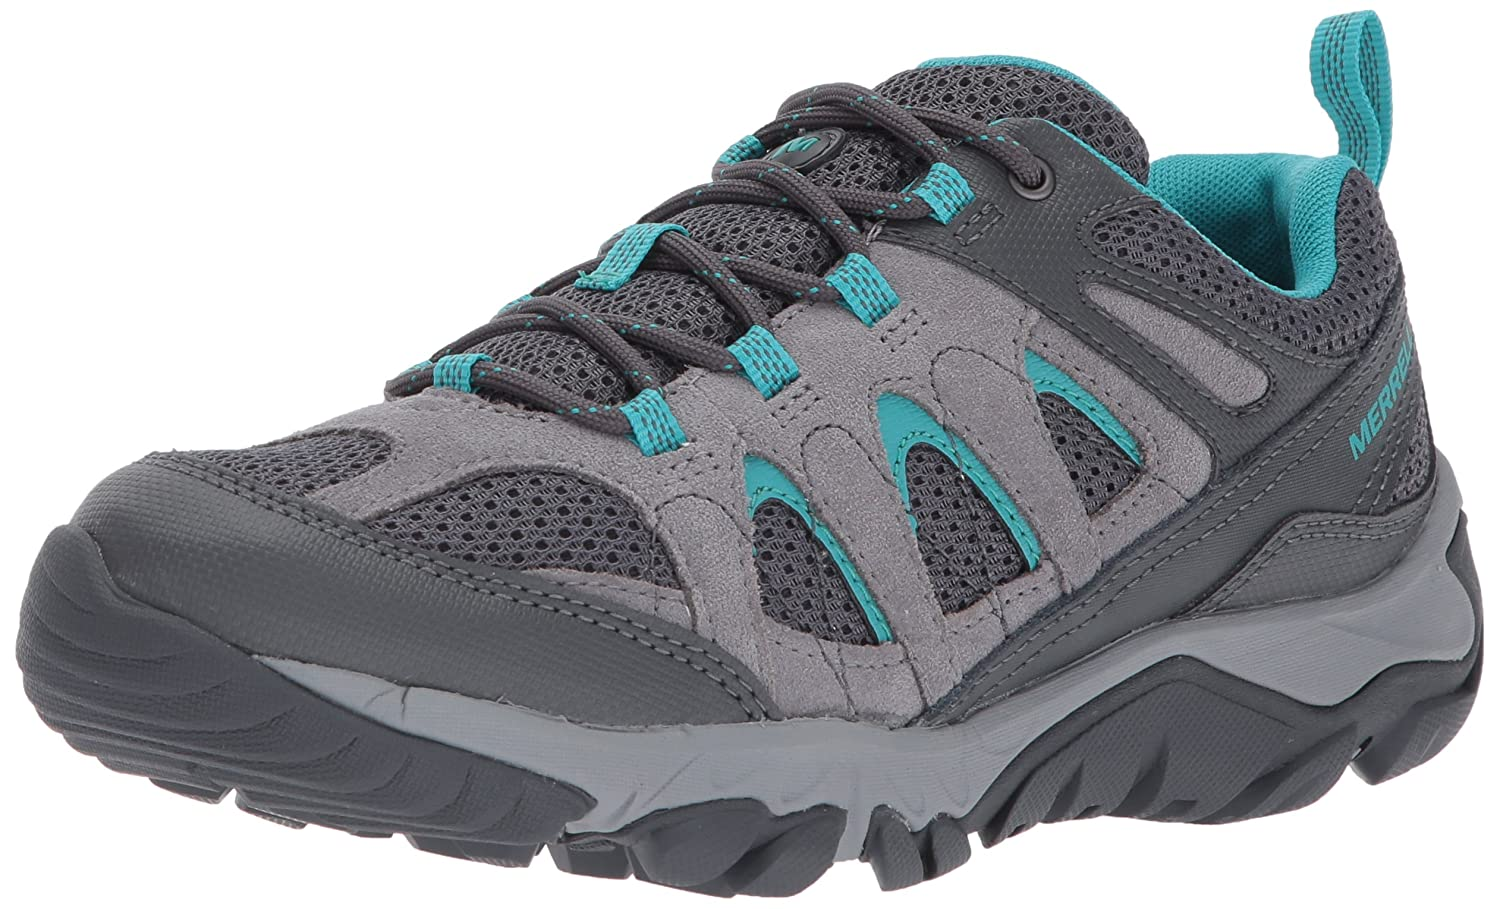 a4c447c098a Merrell Women's Outmost Vent Hiking Shoe